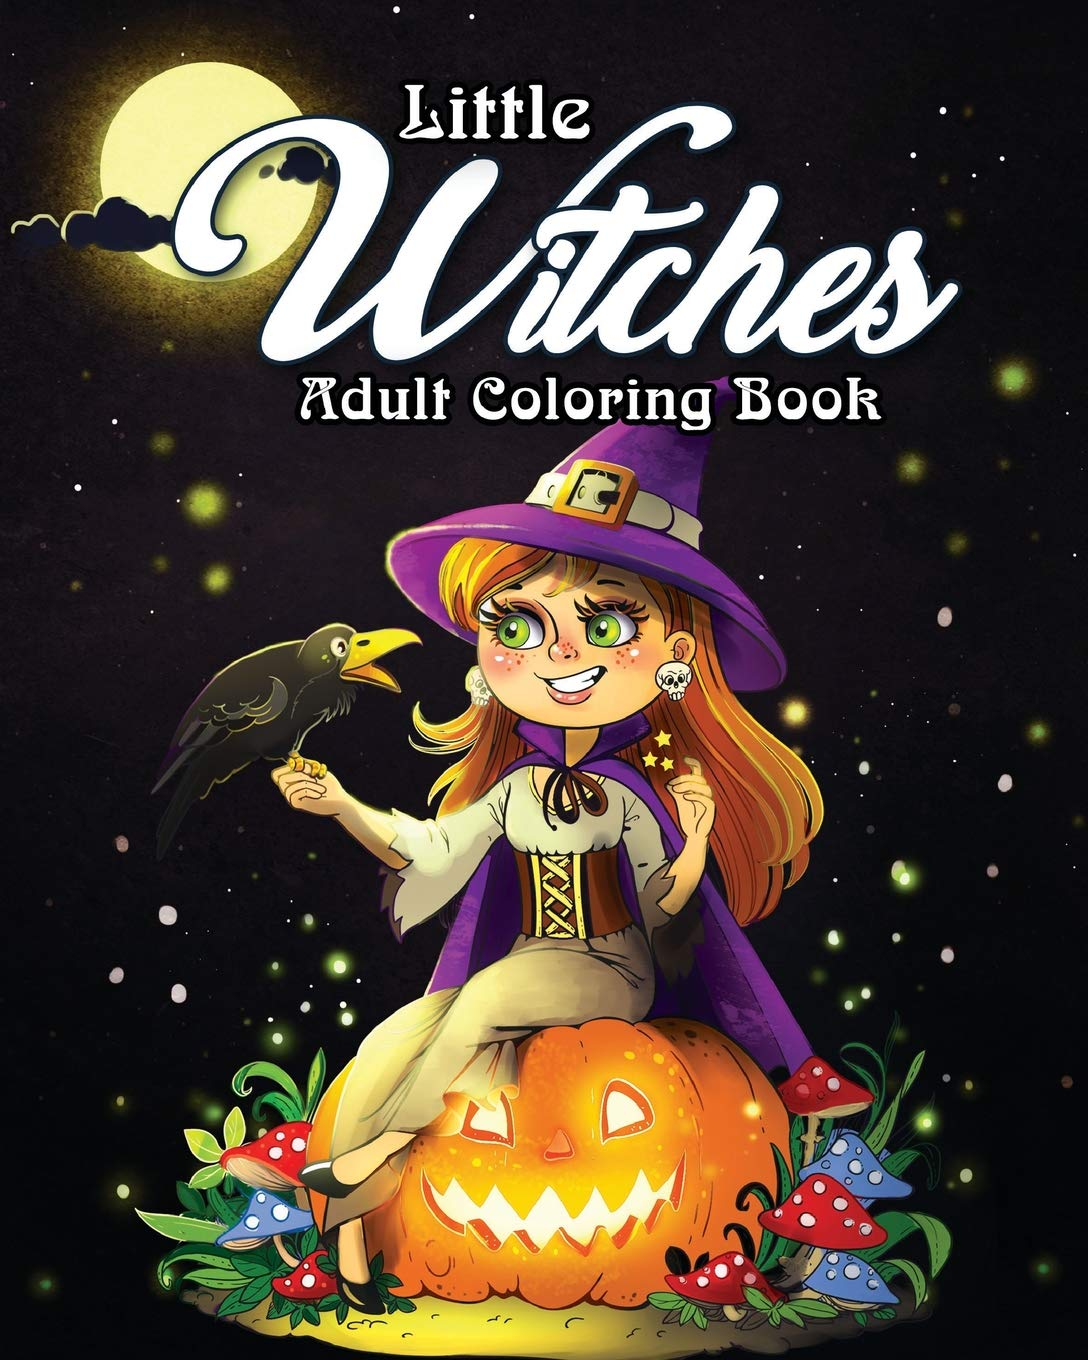 Little Witches Adult Coloring Book product image